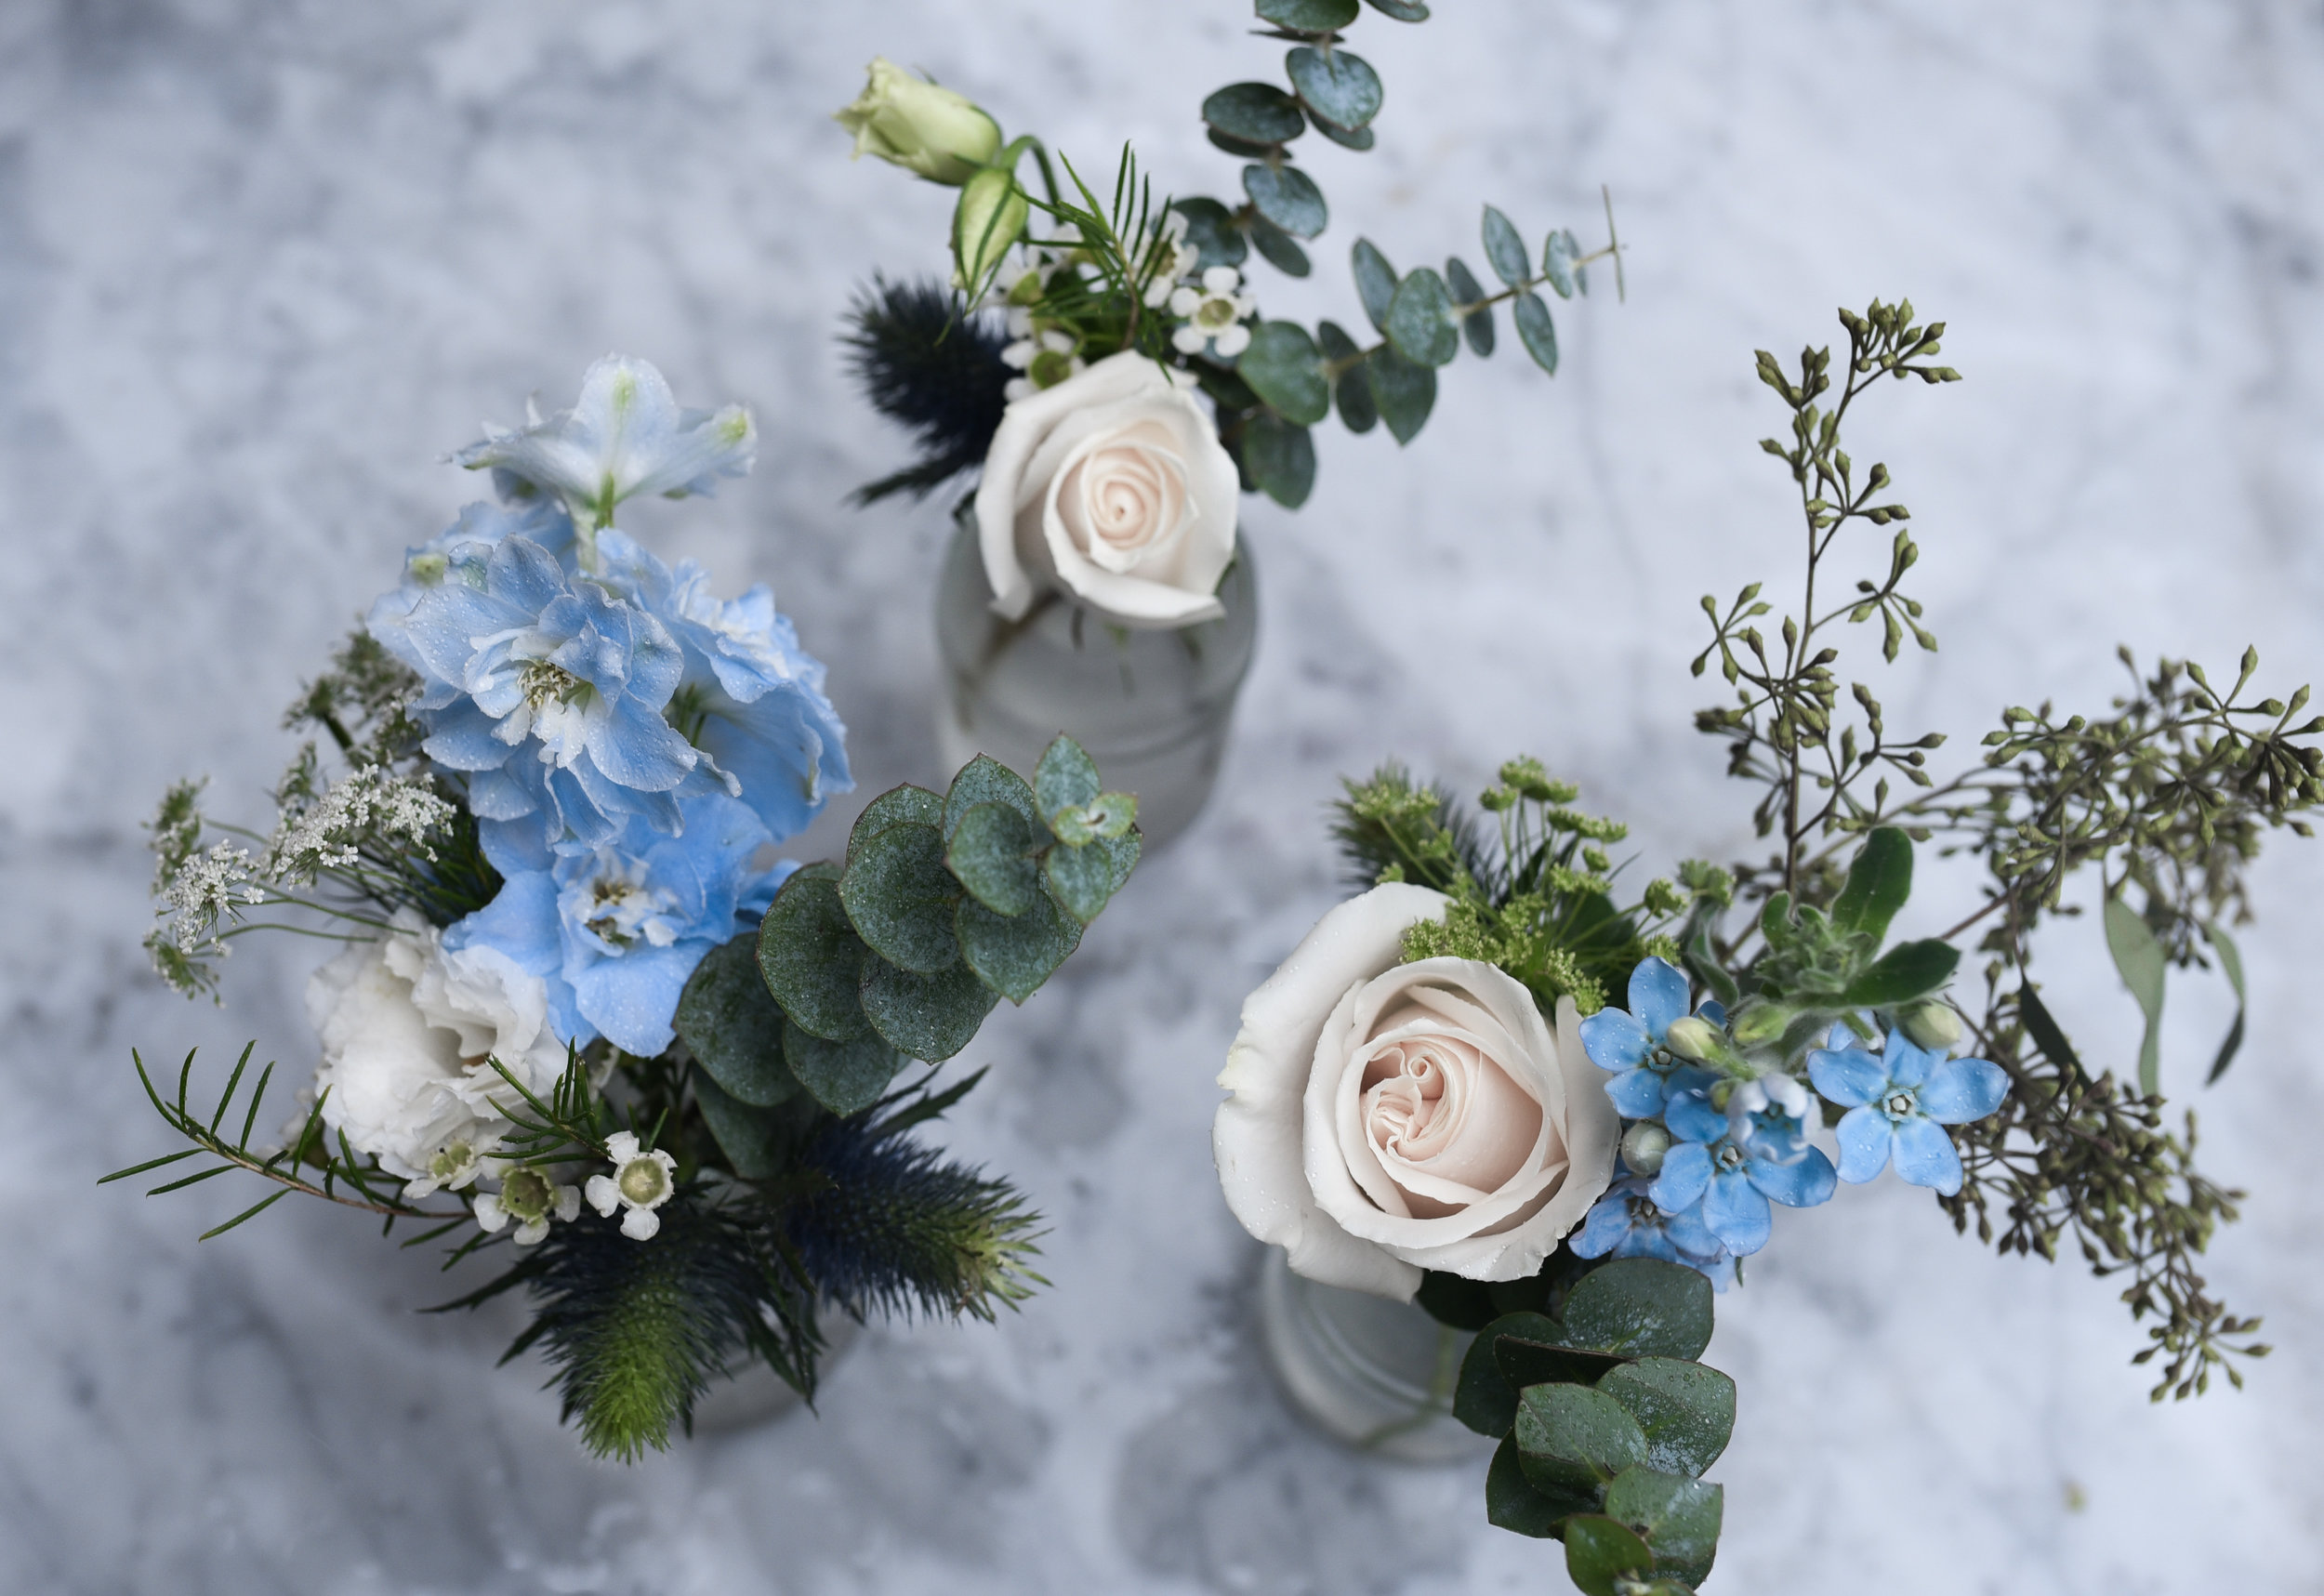 Slight variations between the bud vases gave the arrangements a spontaneous and natural look